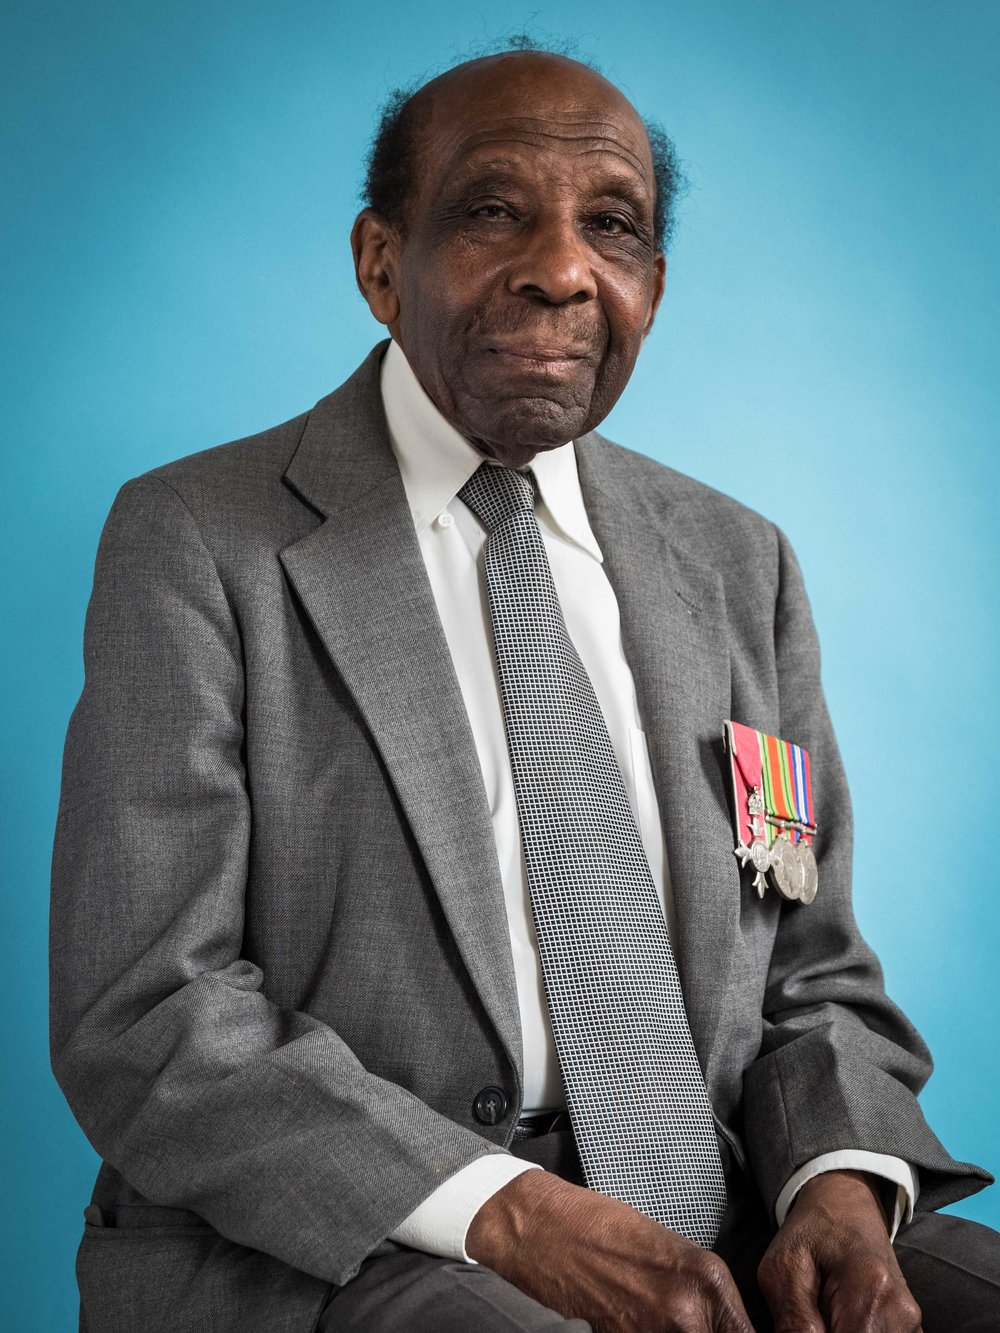 Neil's story - 'The service on Windrush Square is an example of how we are gradually bringing realisation that West Indians were here serving their country and still do.'